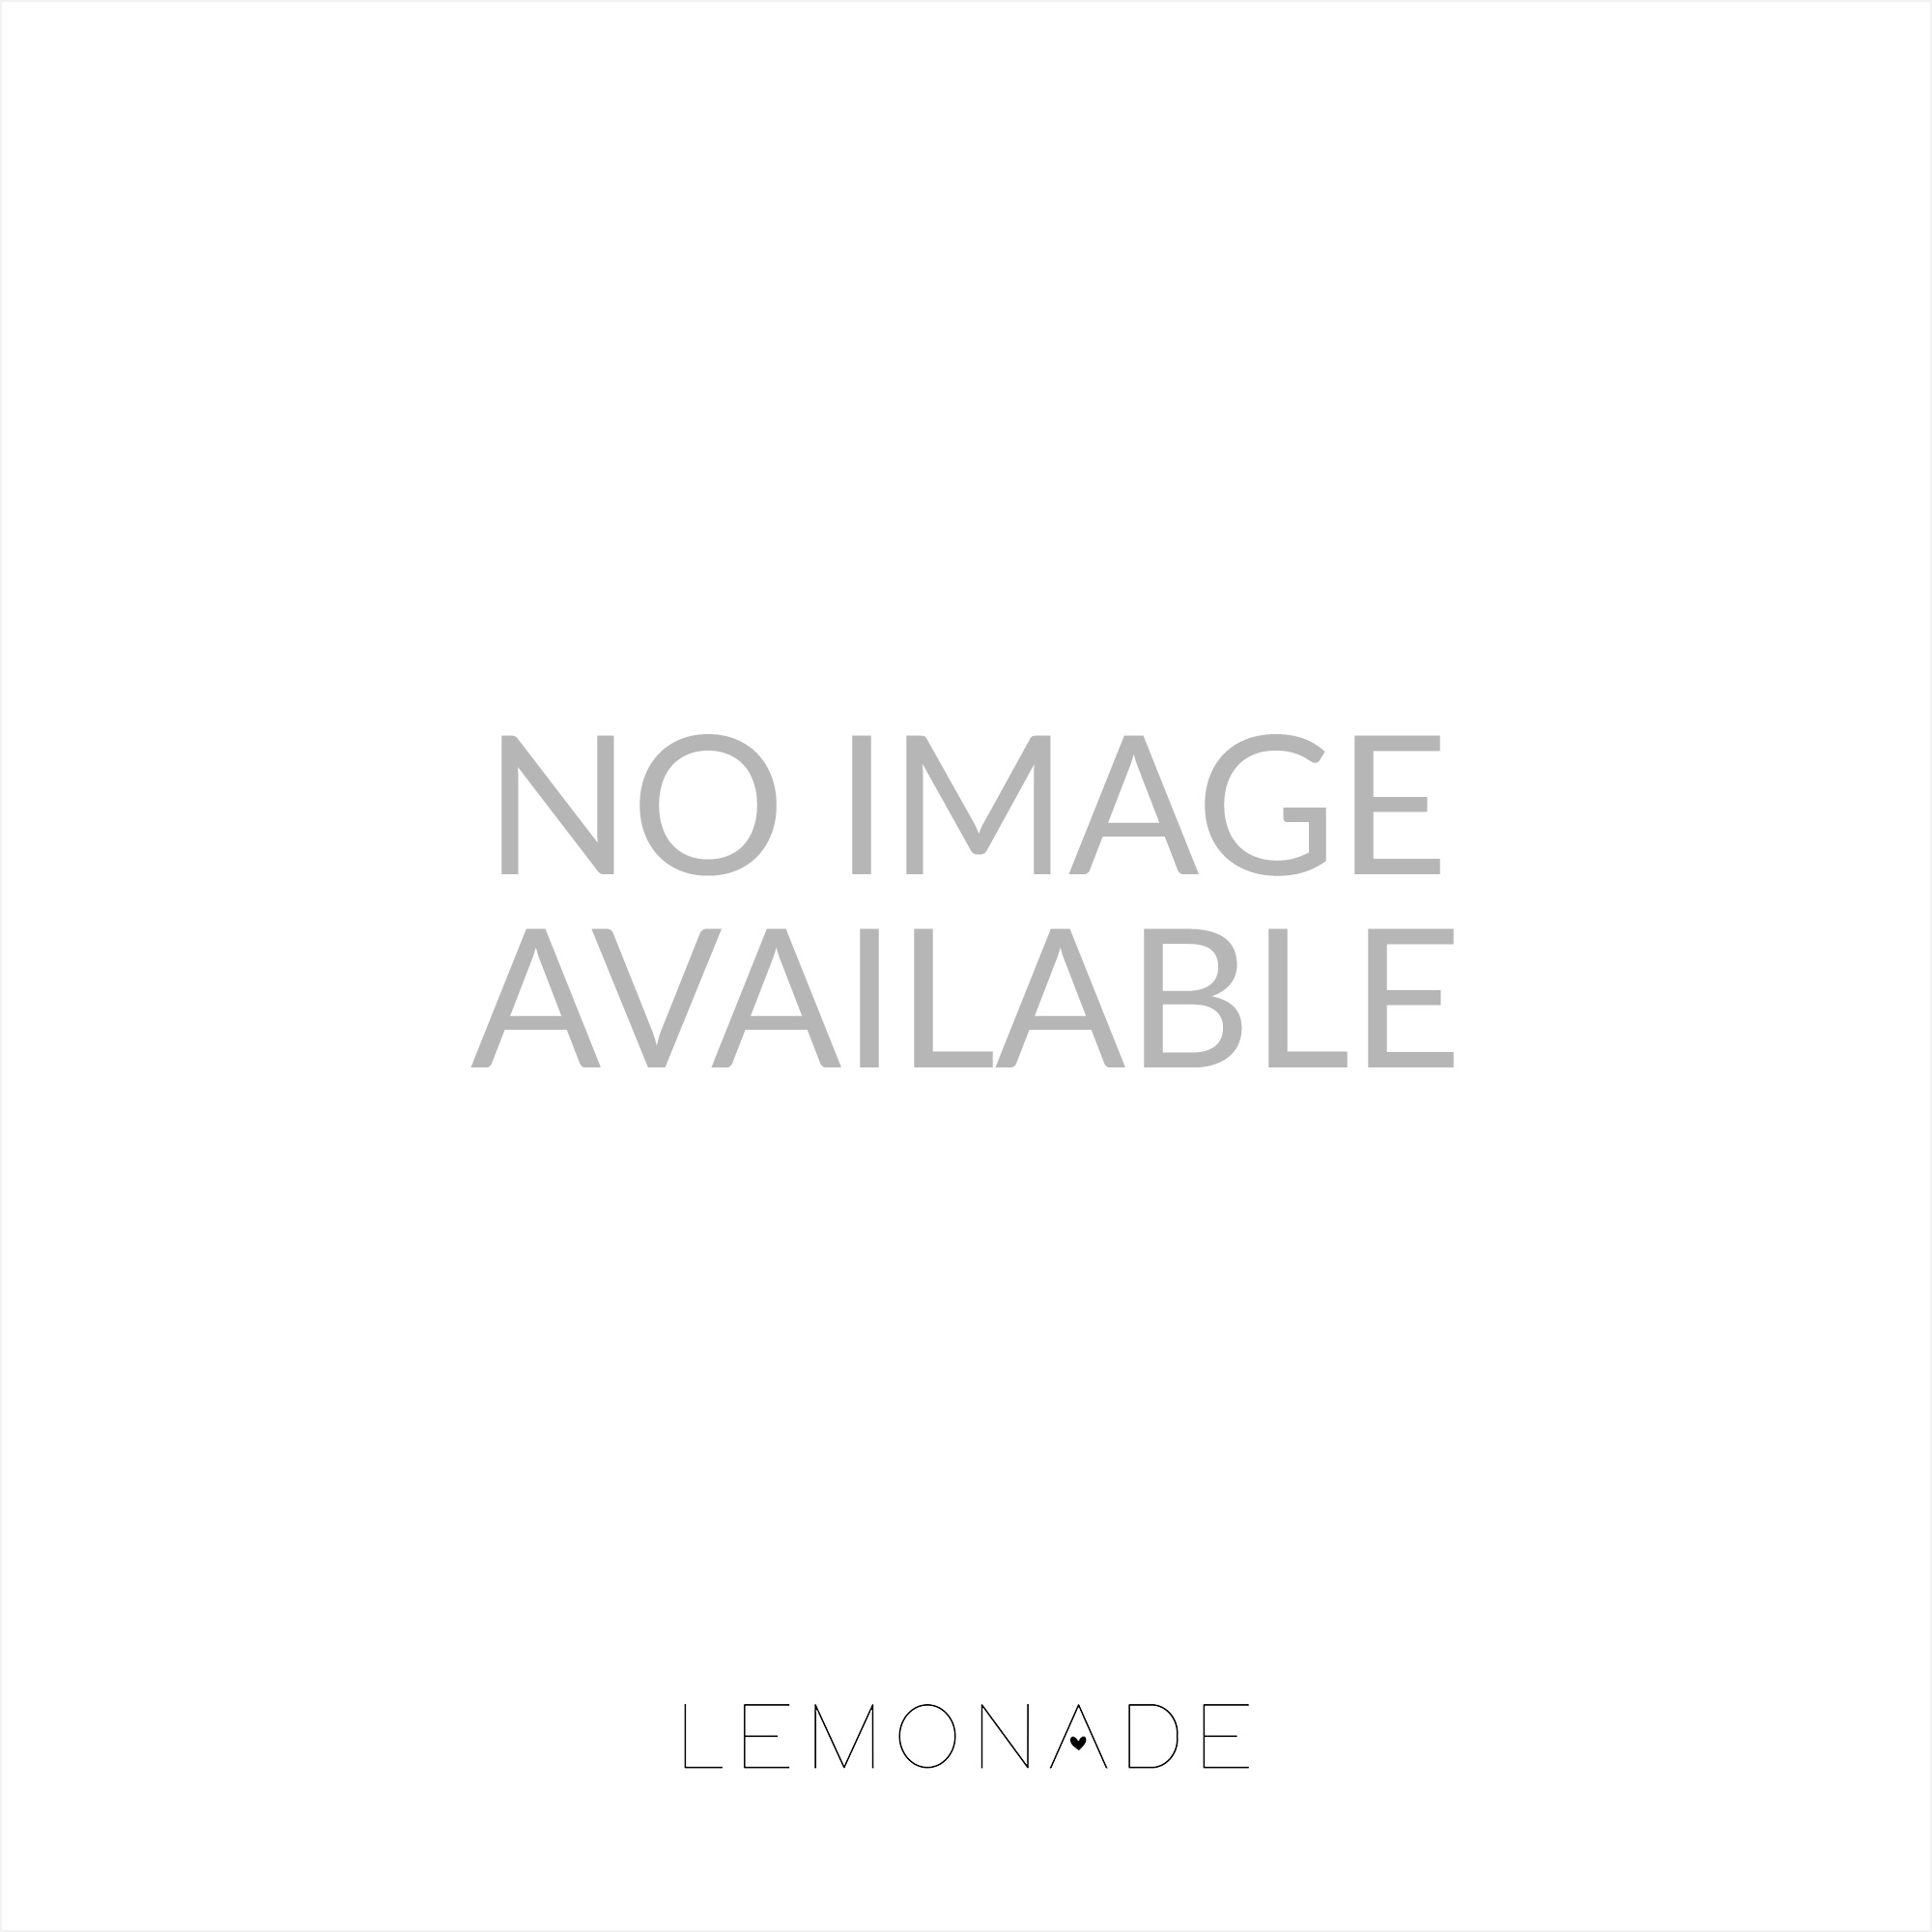 Lemonade Glitter Buckle Back Boots Gold ** SIZE 3 ONLY **